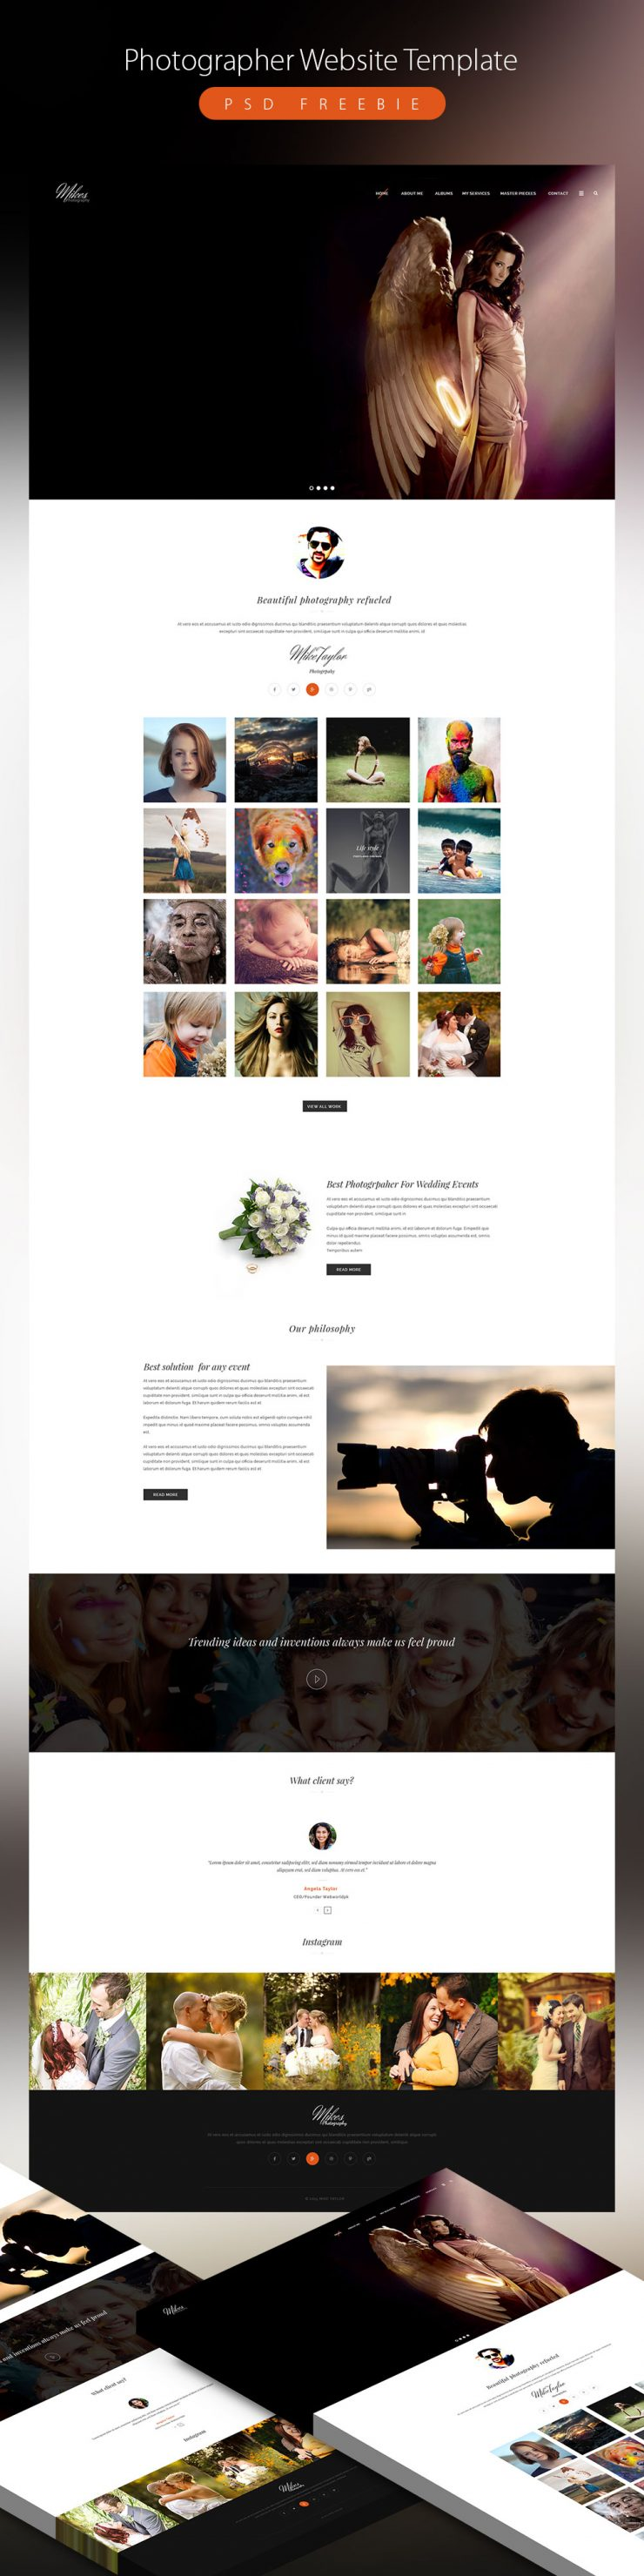 Clean photographer website template psd freebie download for Free photography website templates